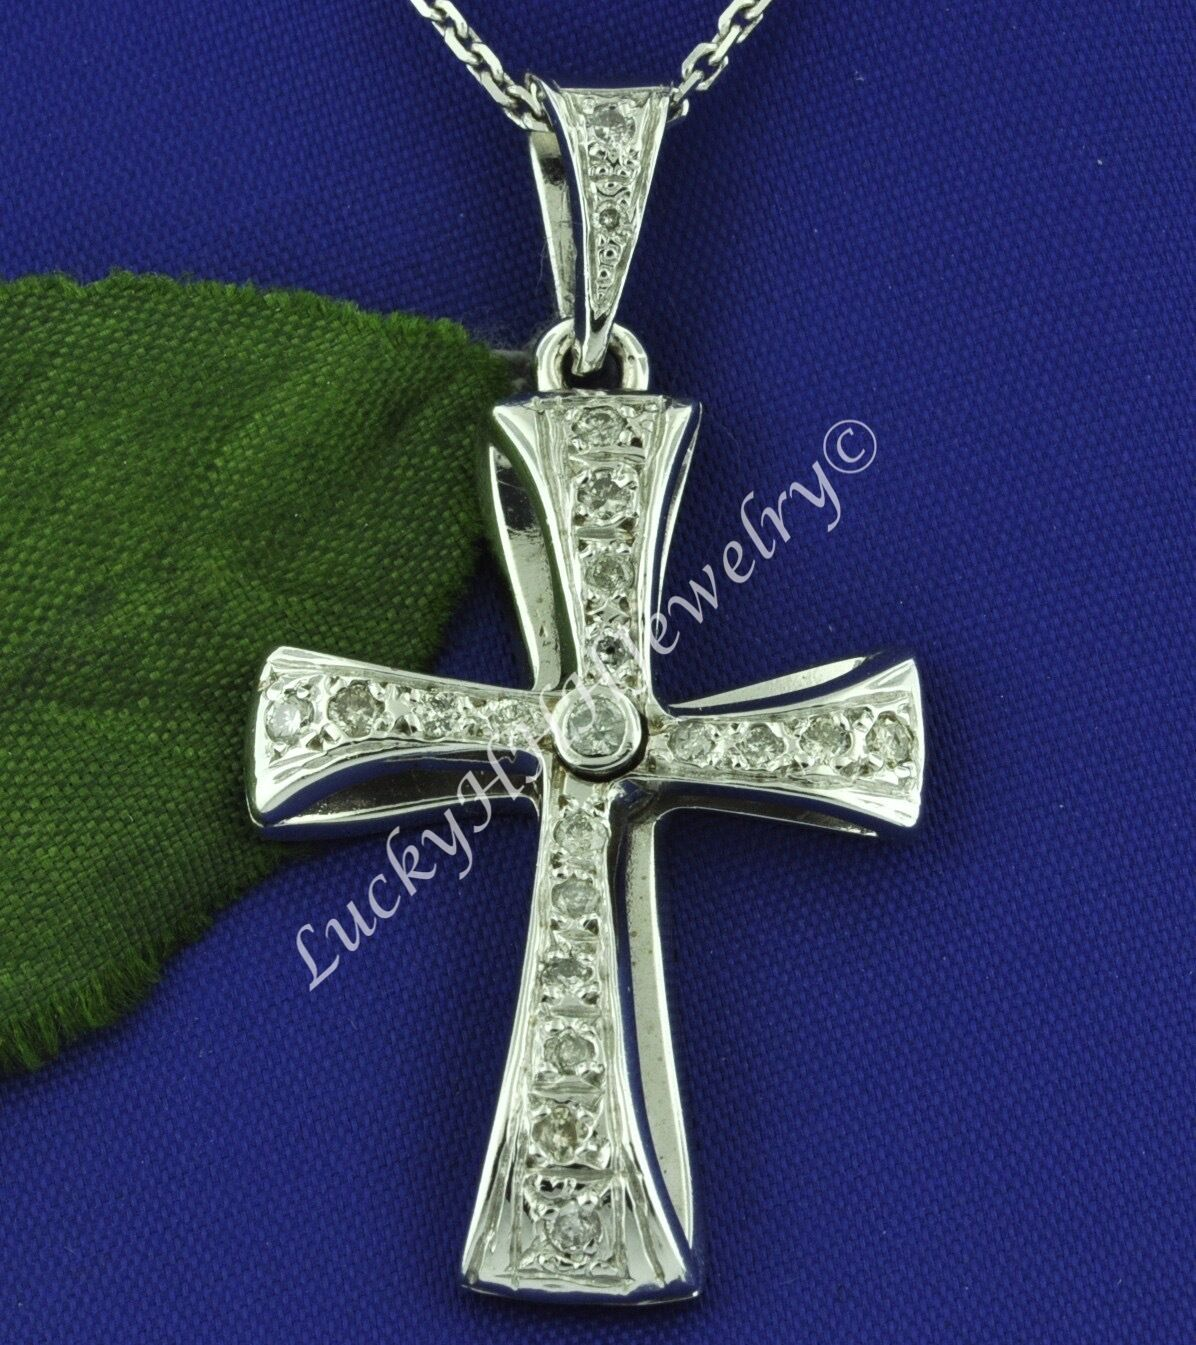 SWIRLY  0.55 ct 14k Solid White gold Diamond Cross Pendant 7.0 Grams  Pre owned